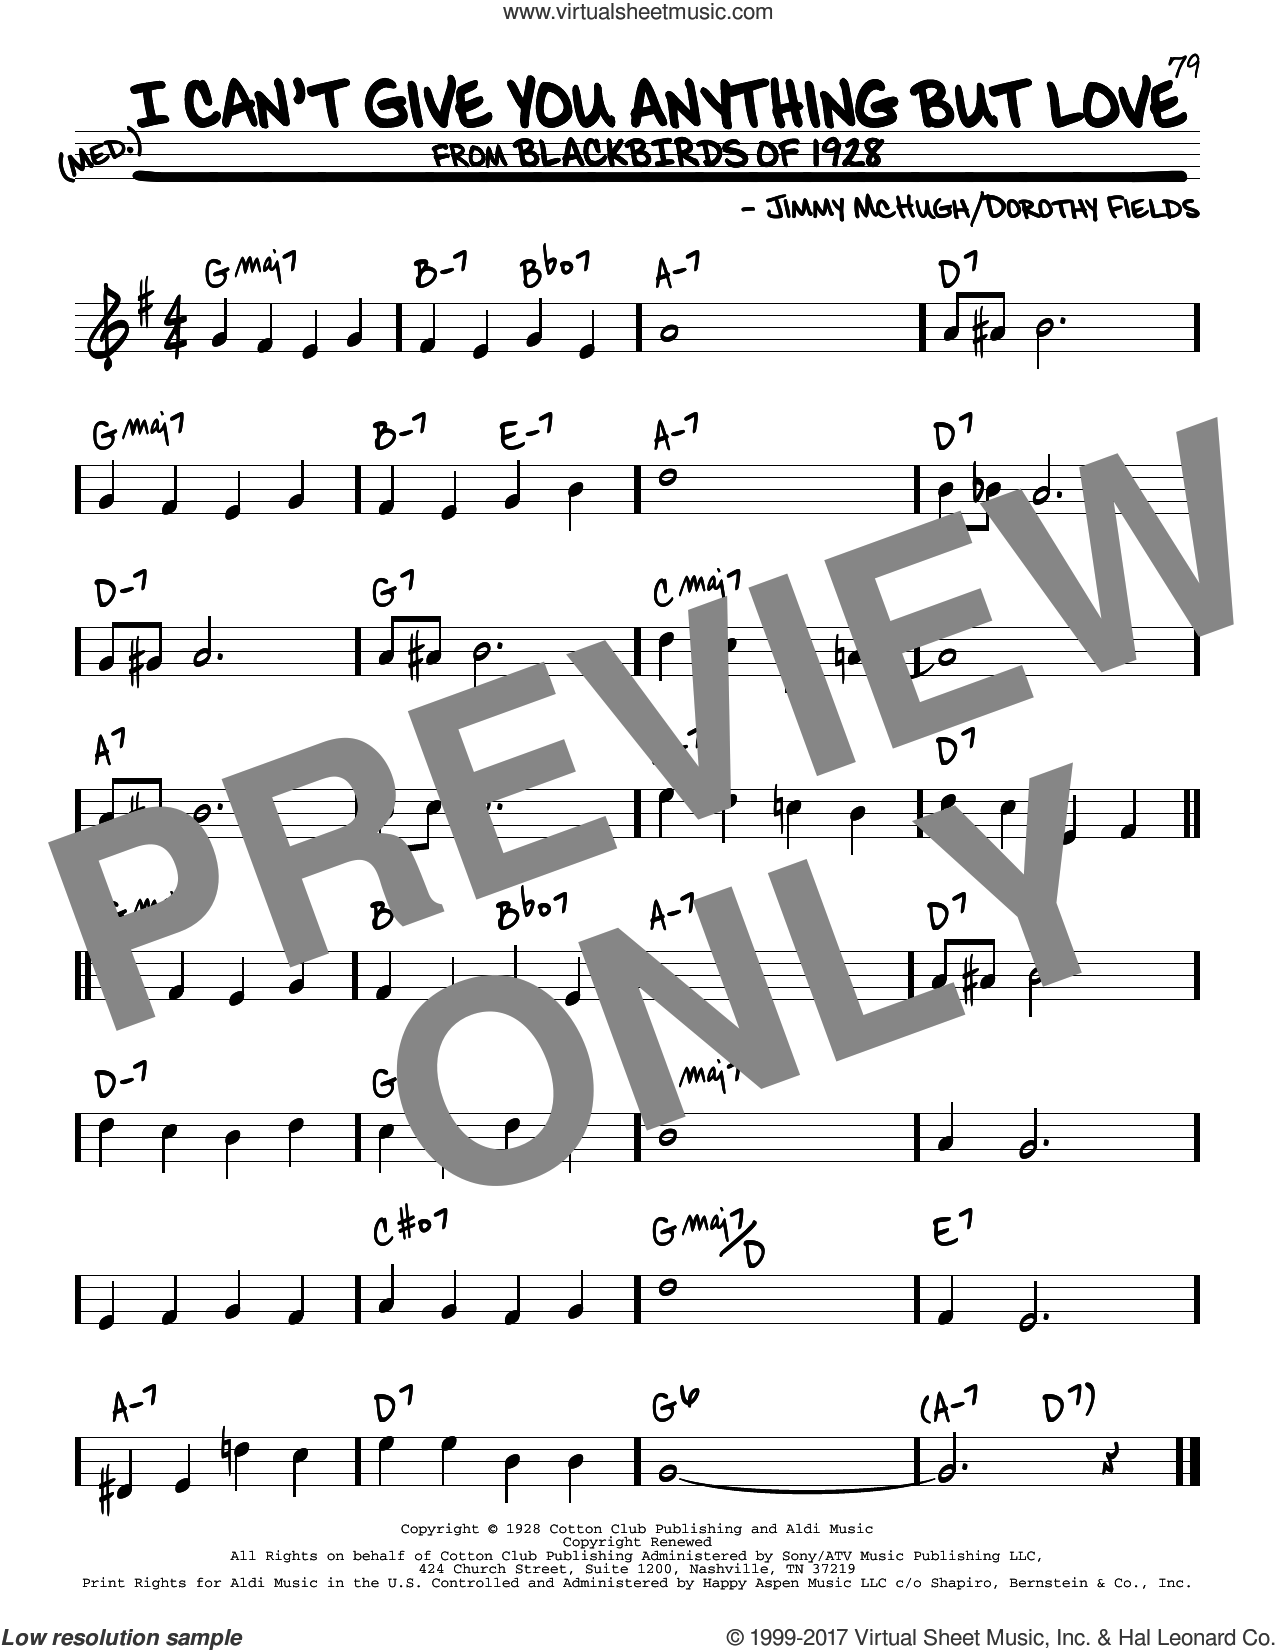 I Can't Give You Anything But Love sheet music for voice and other instruments (real book) by Dorothy Fields and Jimmy McHugh, intermediate skill level